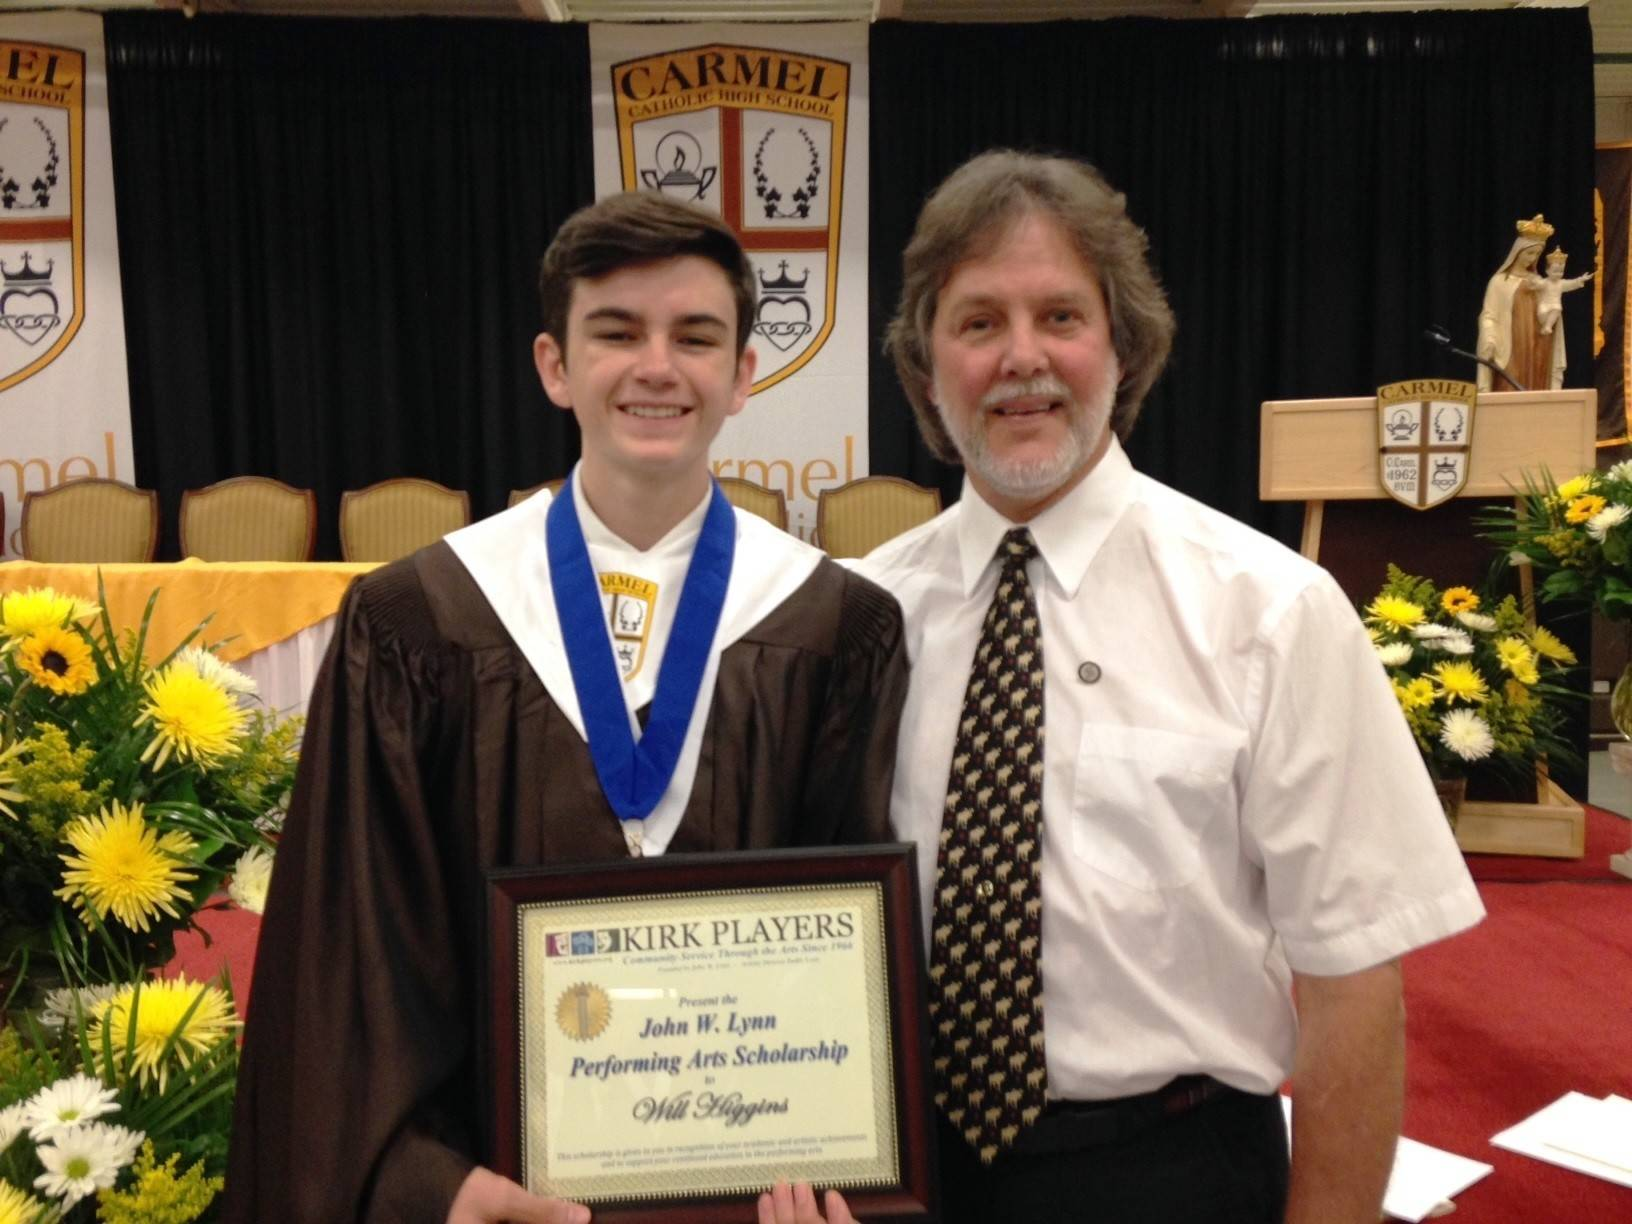 William Higgins of Carmel Catholic High School in Mundelein was awarded the Kirk Players' John W. Lynn Performing Arts Scholarship.